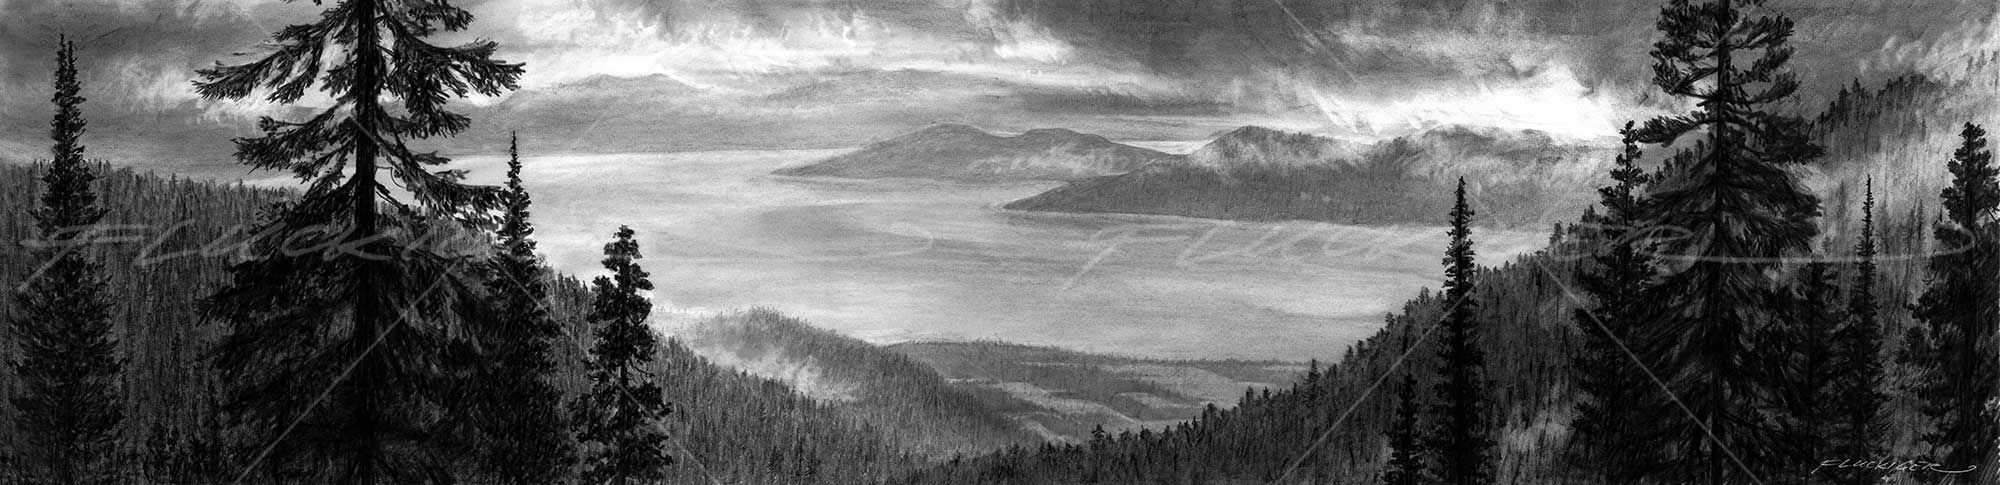 October 1: Idaho's Lake Pend Oreille stretches luxuriantly beneath the tumbling clouds of early fall, as majestic conifers lift their boughs in the sodden breeze.